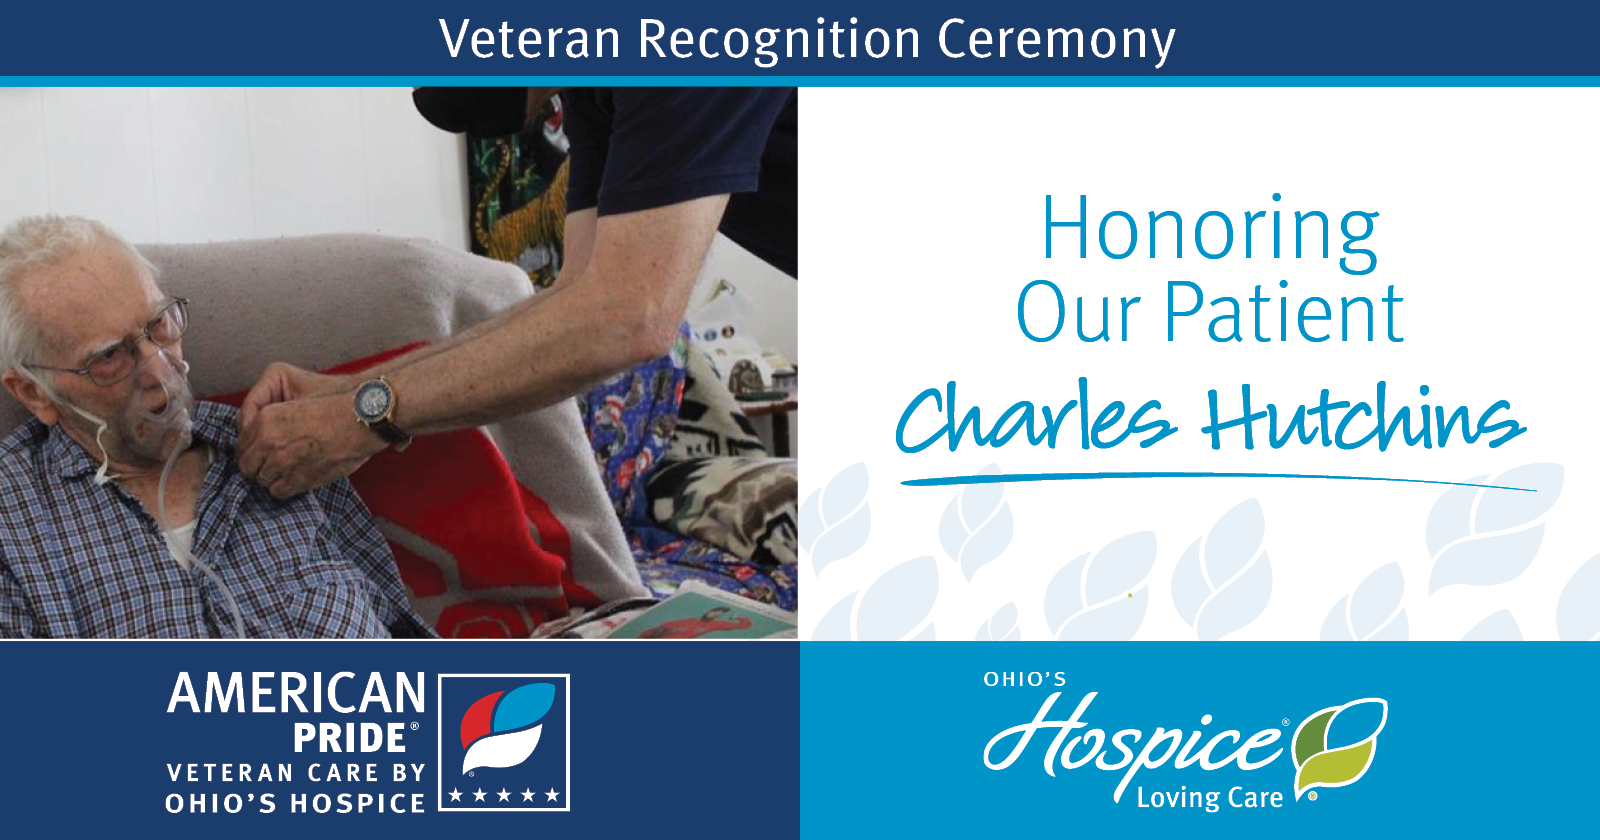 Ohio's Hospice Loving Care Honors Patient With Veteran Recognition Ceremony